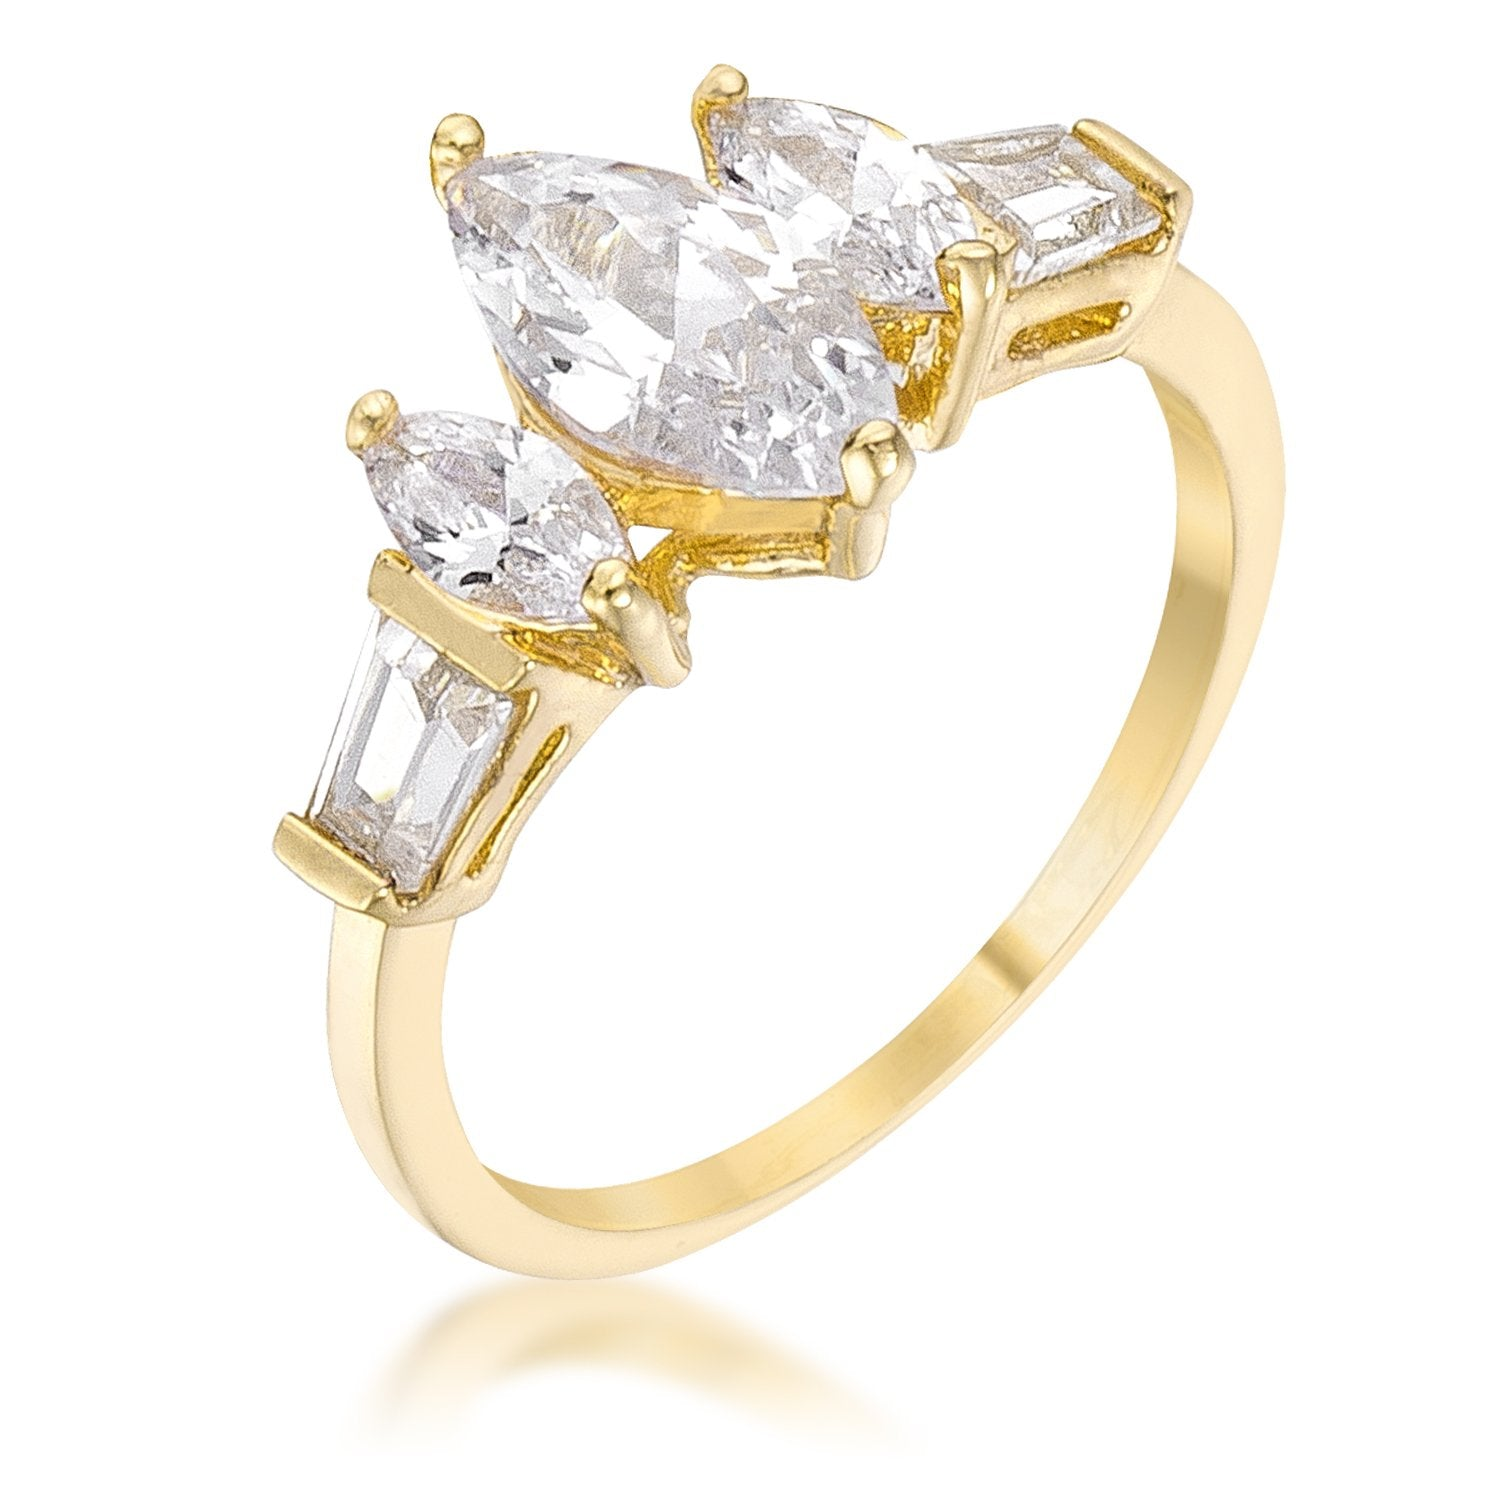 Marquise Triplet Engagement Ring - R08170G-C01